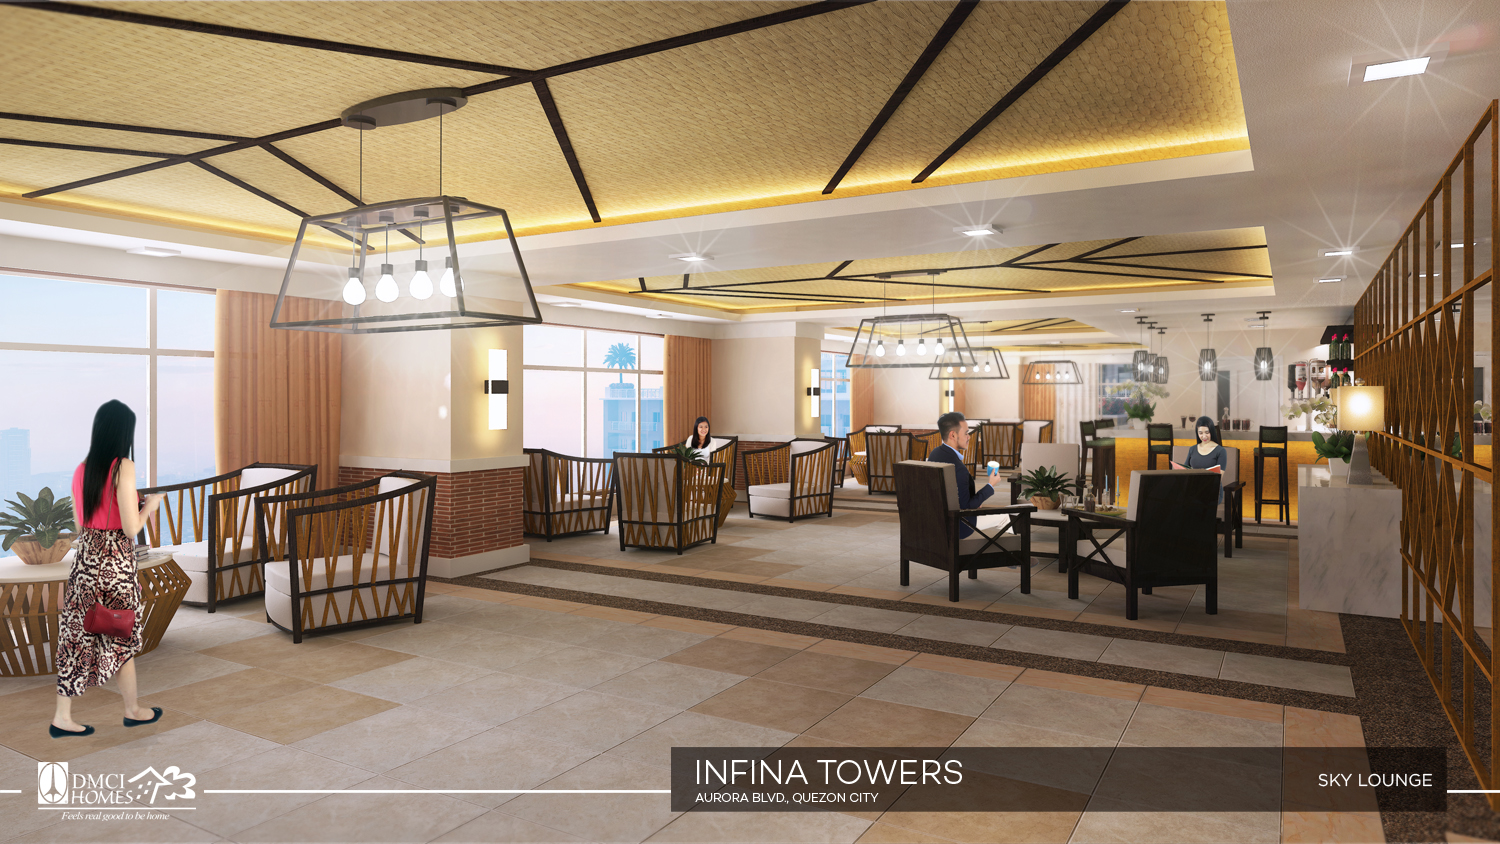 Relaxation Station Pool Lounge: Infina Towers Aurora Boulevard Cubao